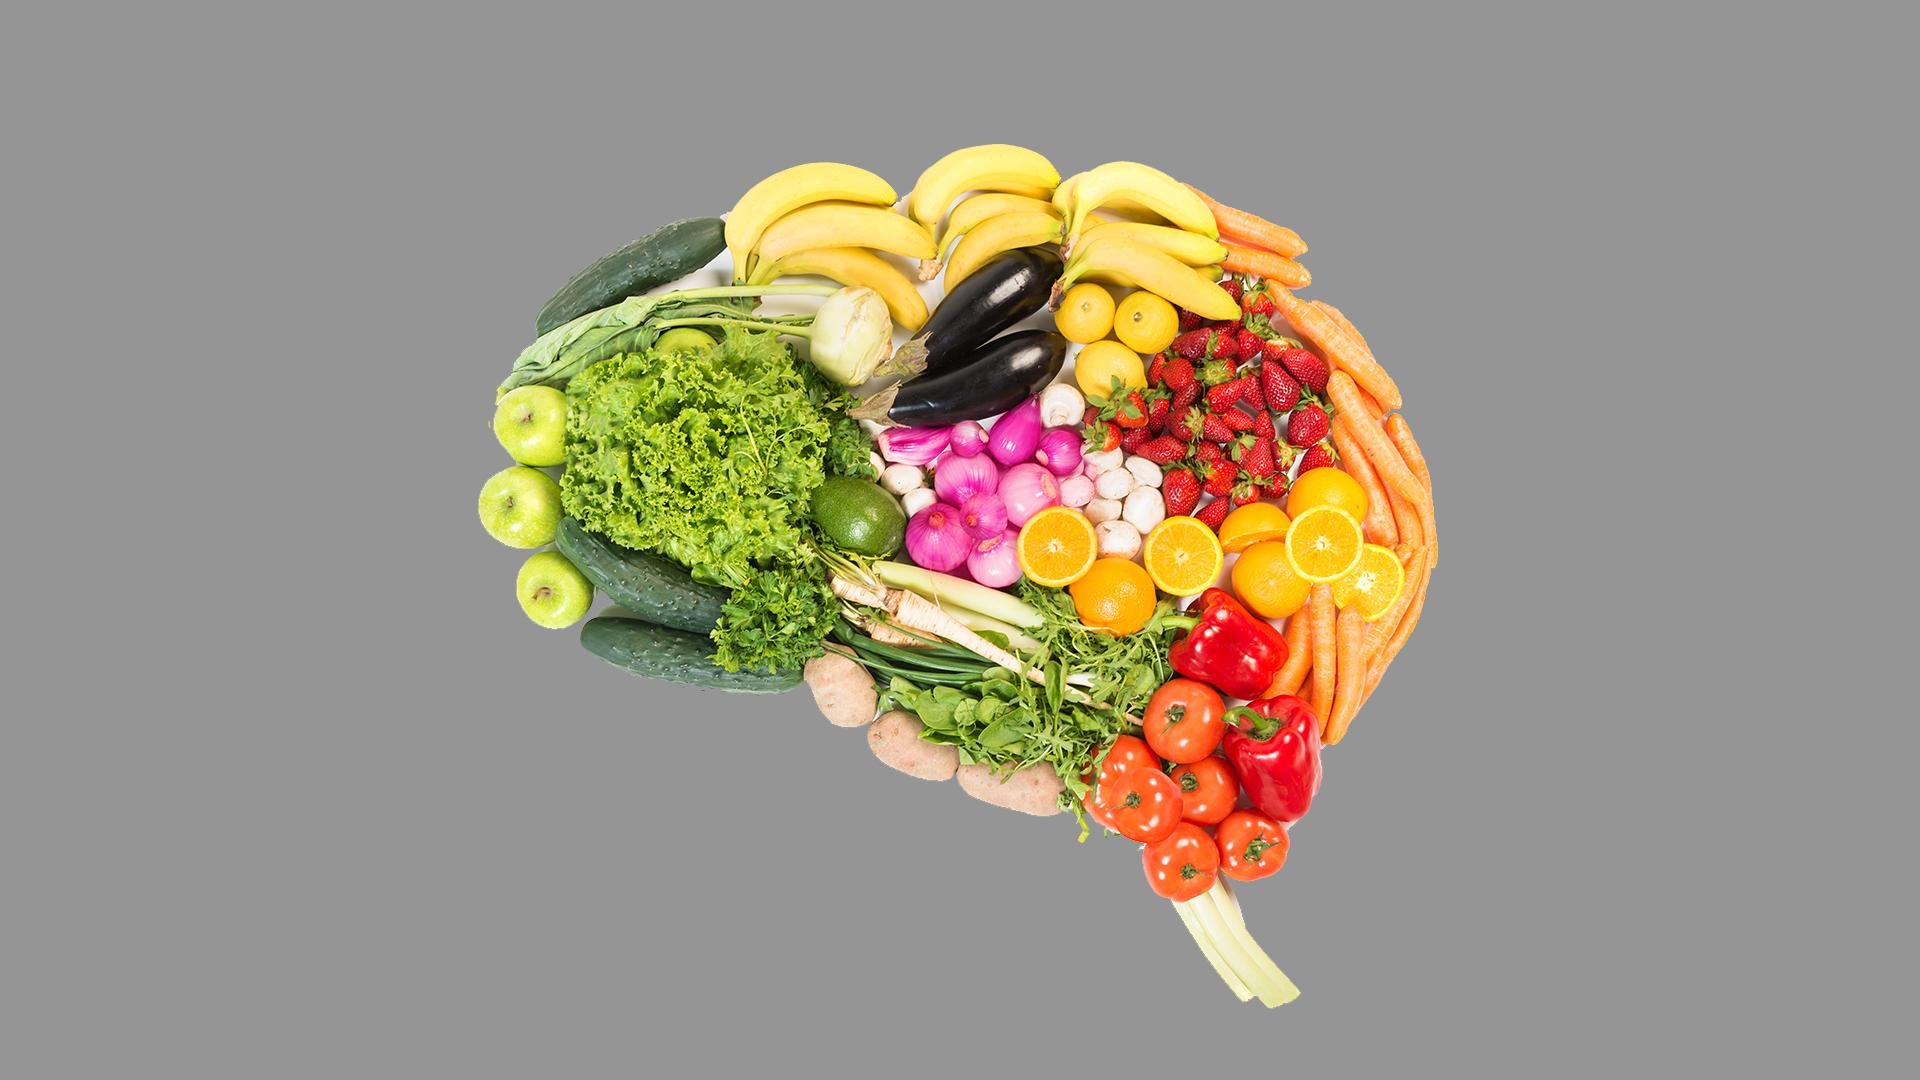 Can Food Make You Smarter? Here Are 11 Foods That Will Boost Your Brain Health | Rachael Ray Show